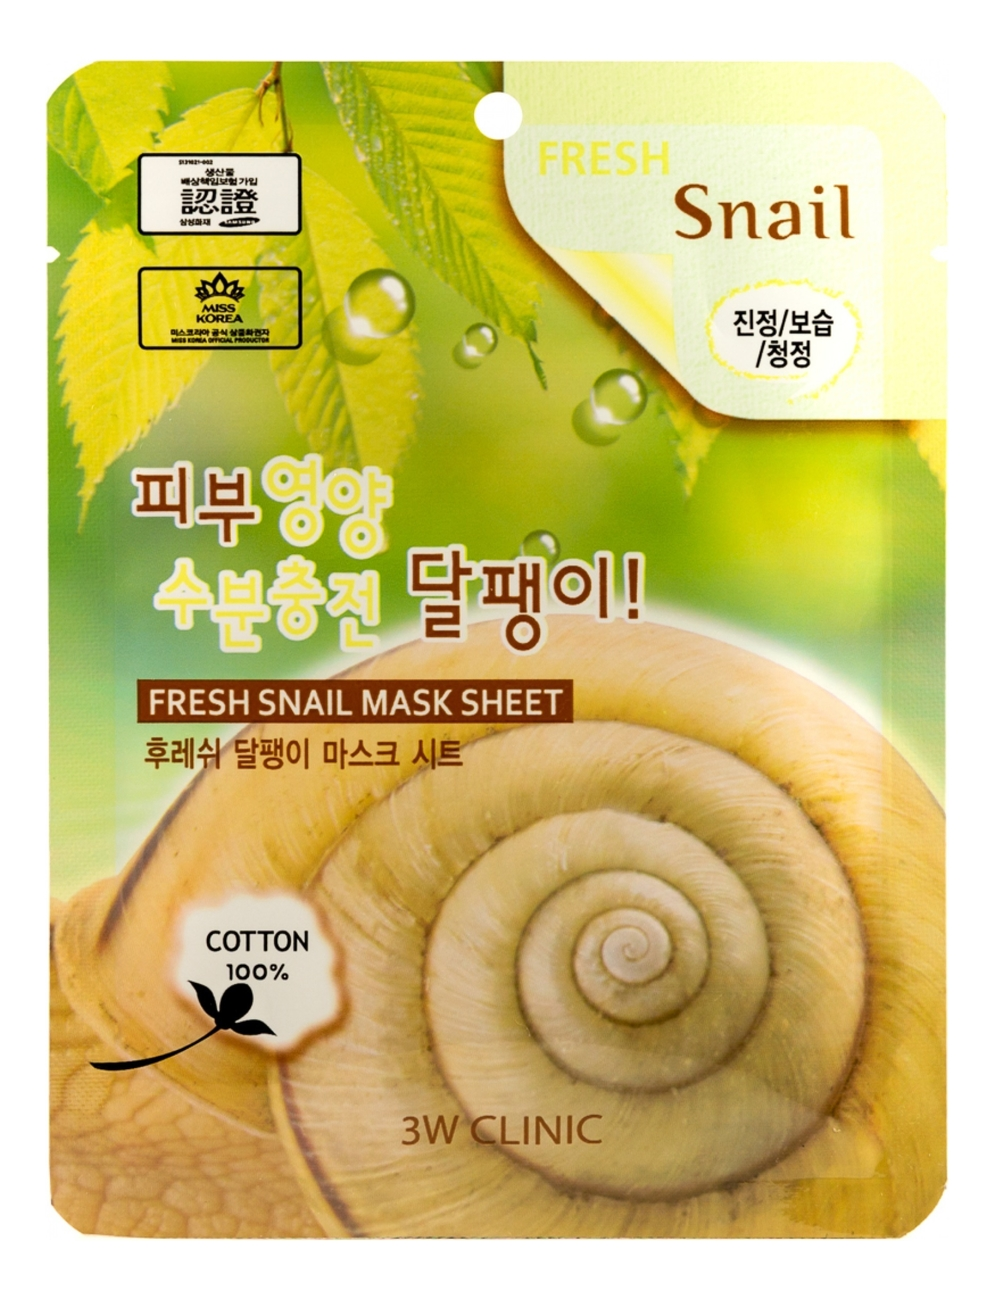 Тканевая маска для лица с секретом улитки Fresh Snail Mask Sheet: Маска 23г